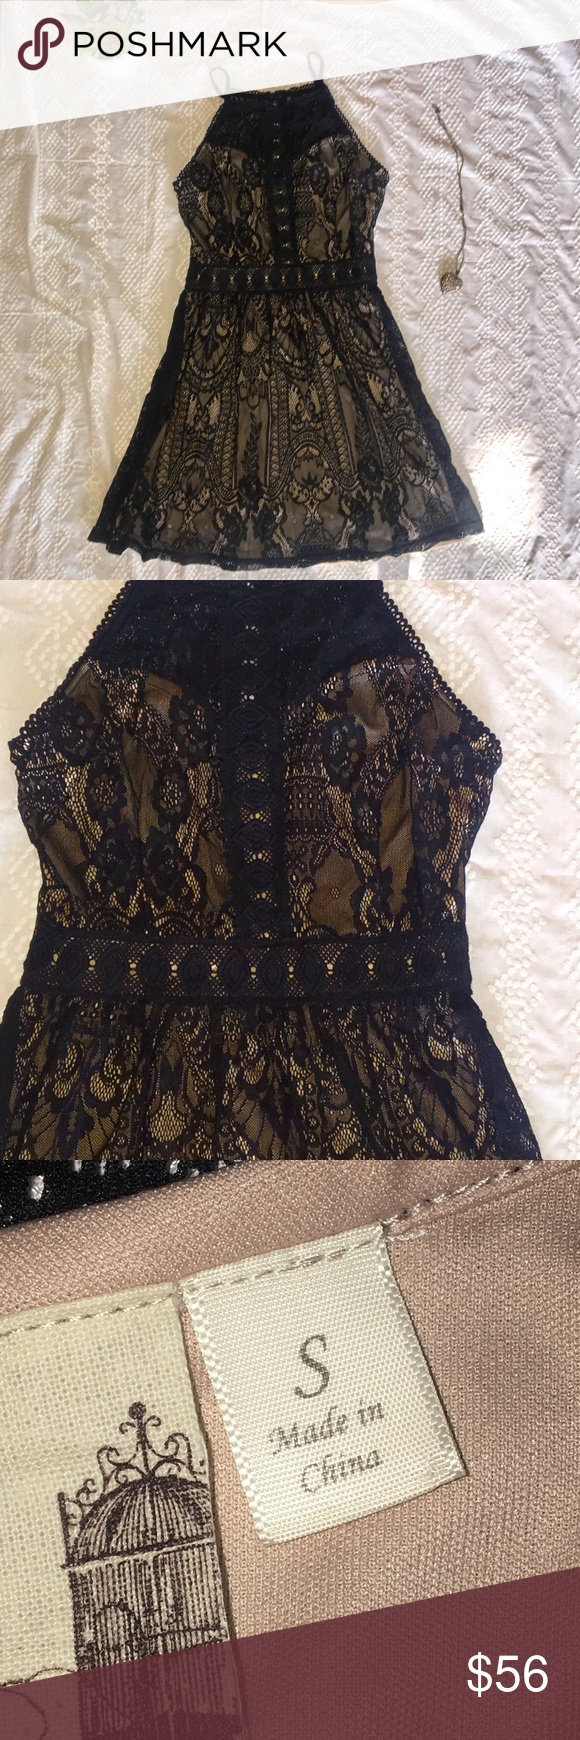 00b02d939563 Black lace cocktail dress! Sexy Black and Tan Cocktail dress. Inside lining  is a nude/tan color with a black lace overlay. Very unique! 100% polyester.